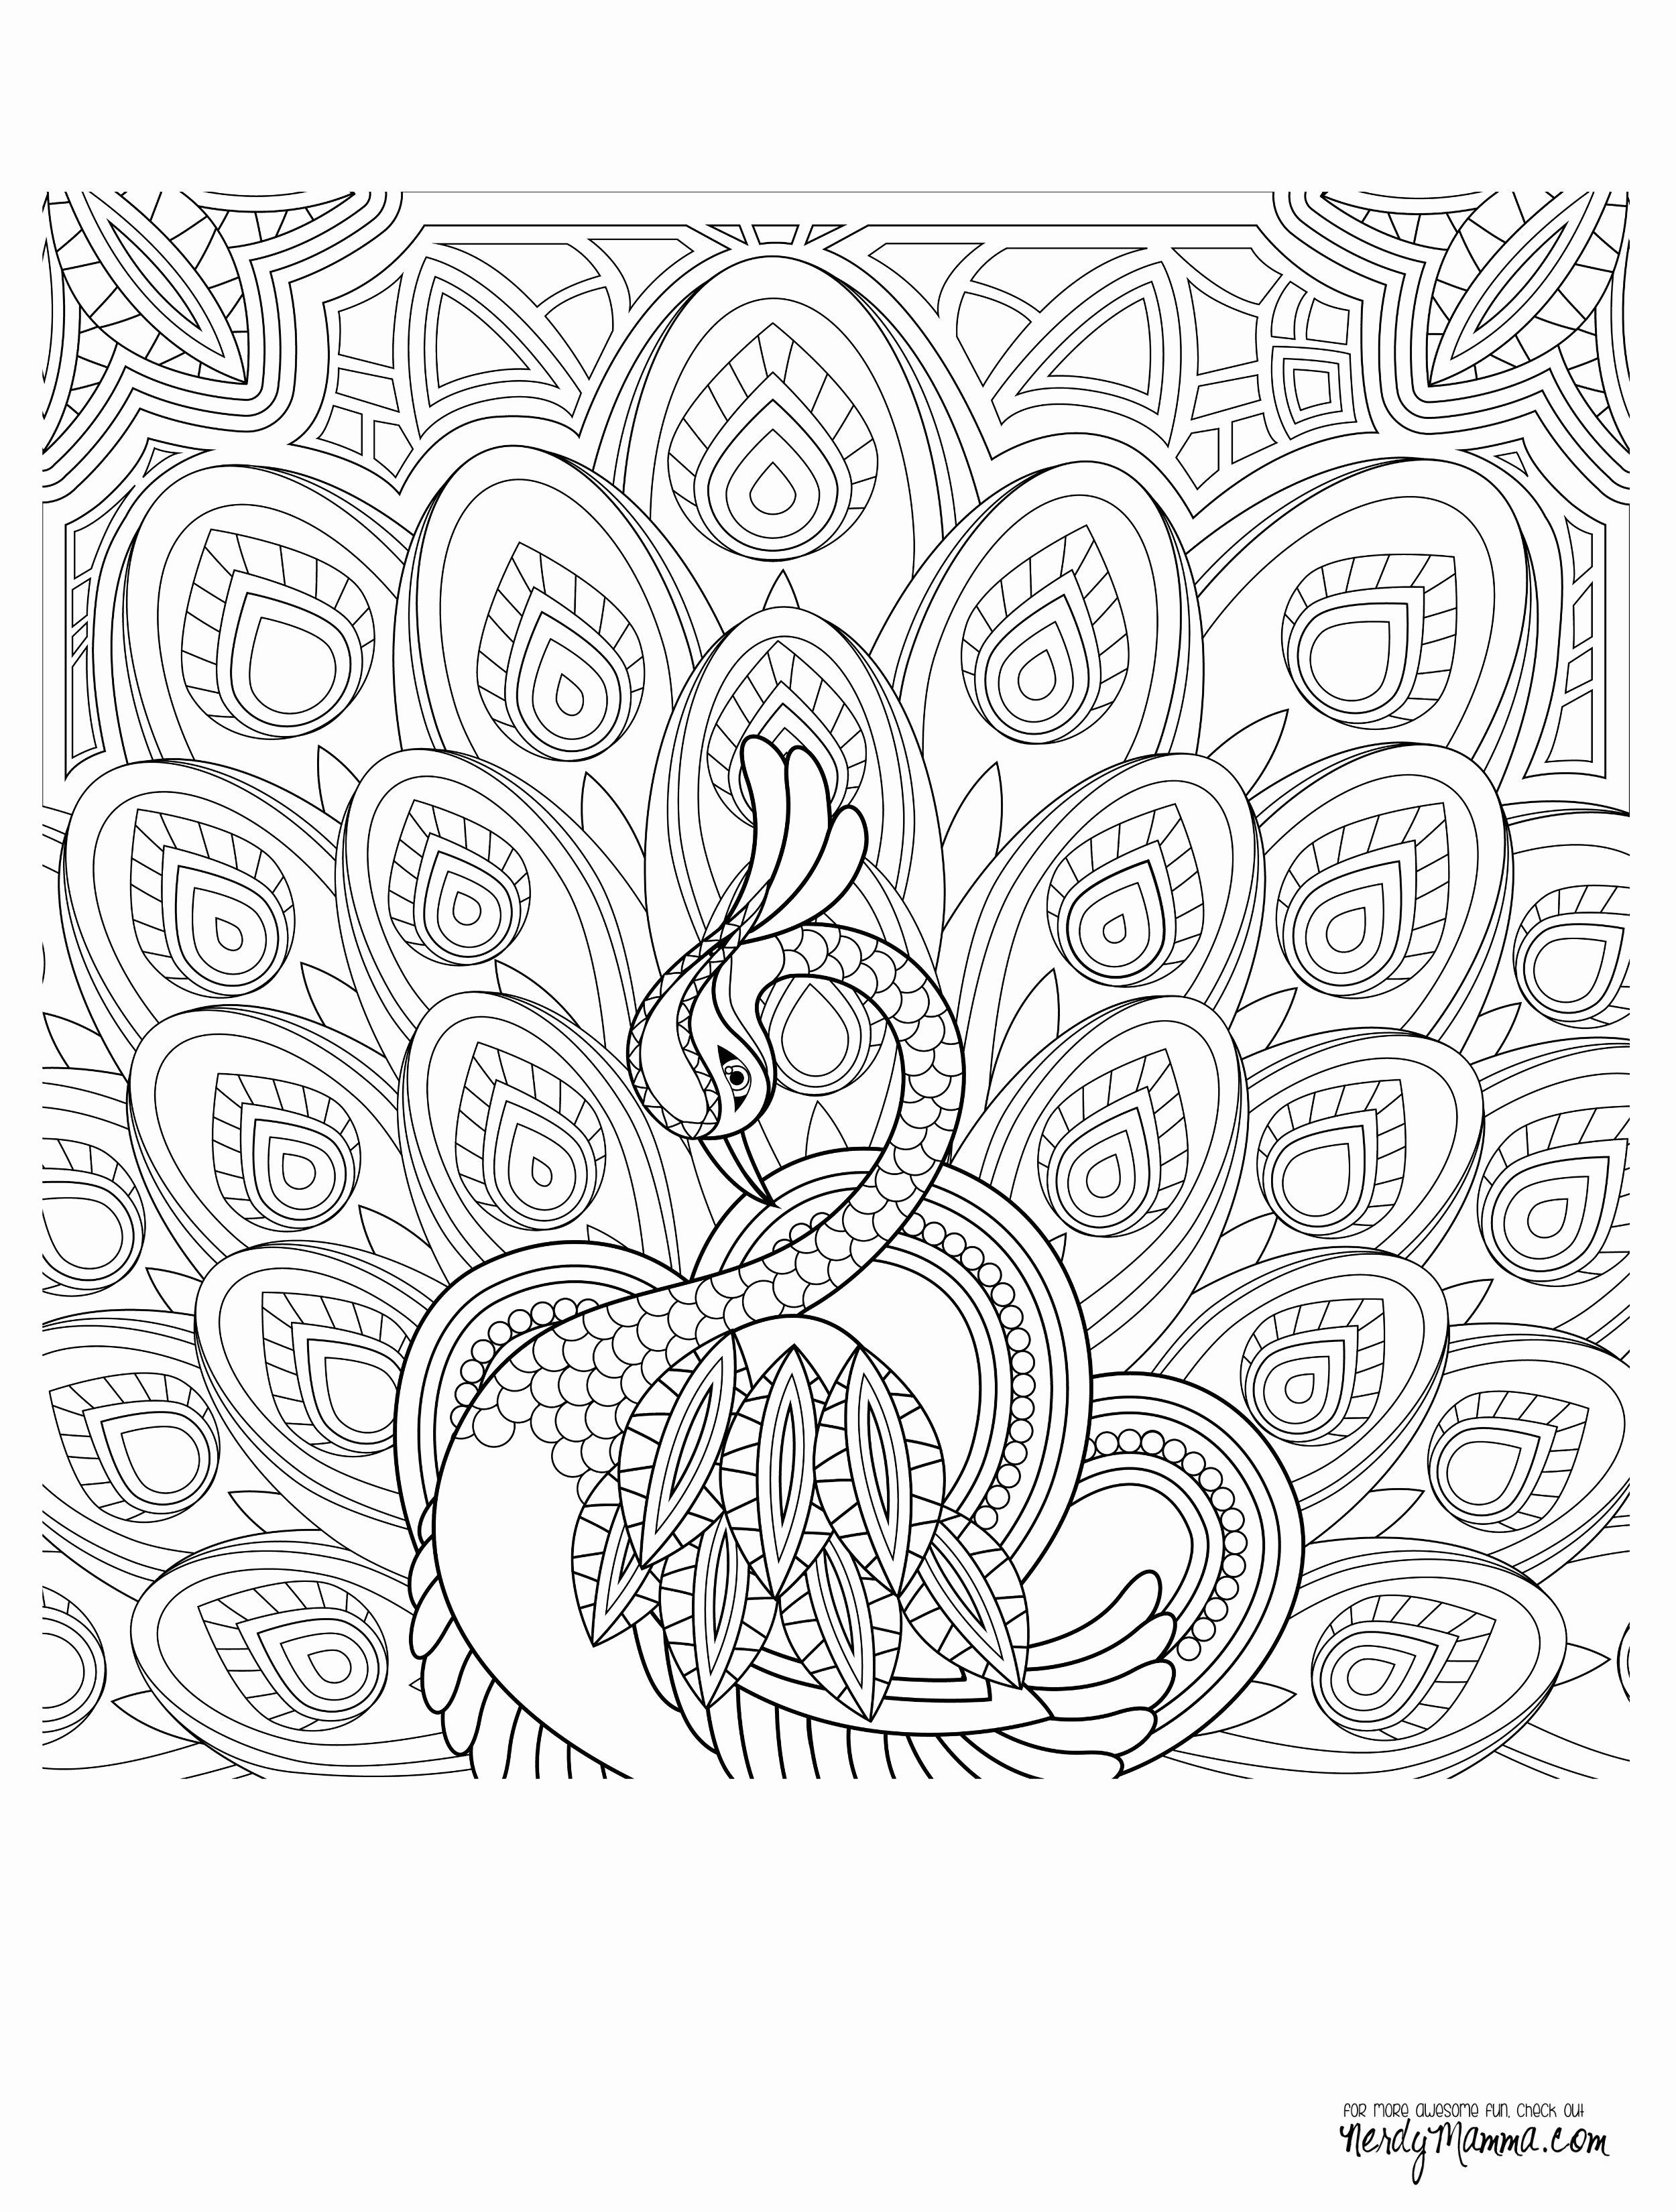 Nature Mandala Coloring Pages  to Print 14s - Free For kids